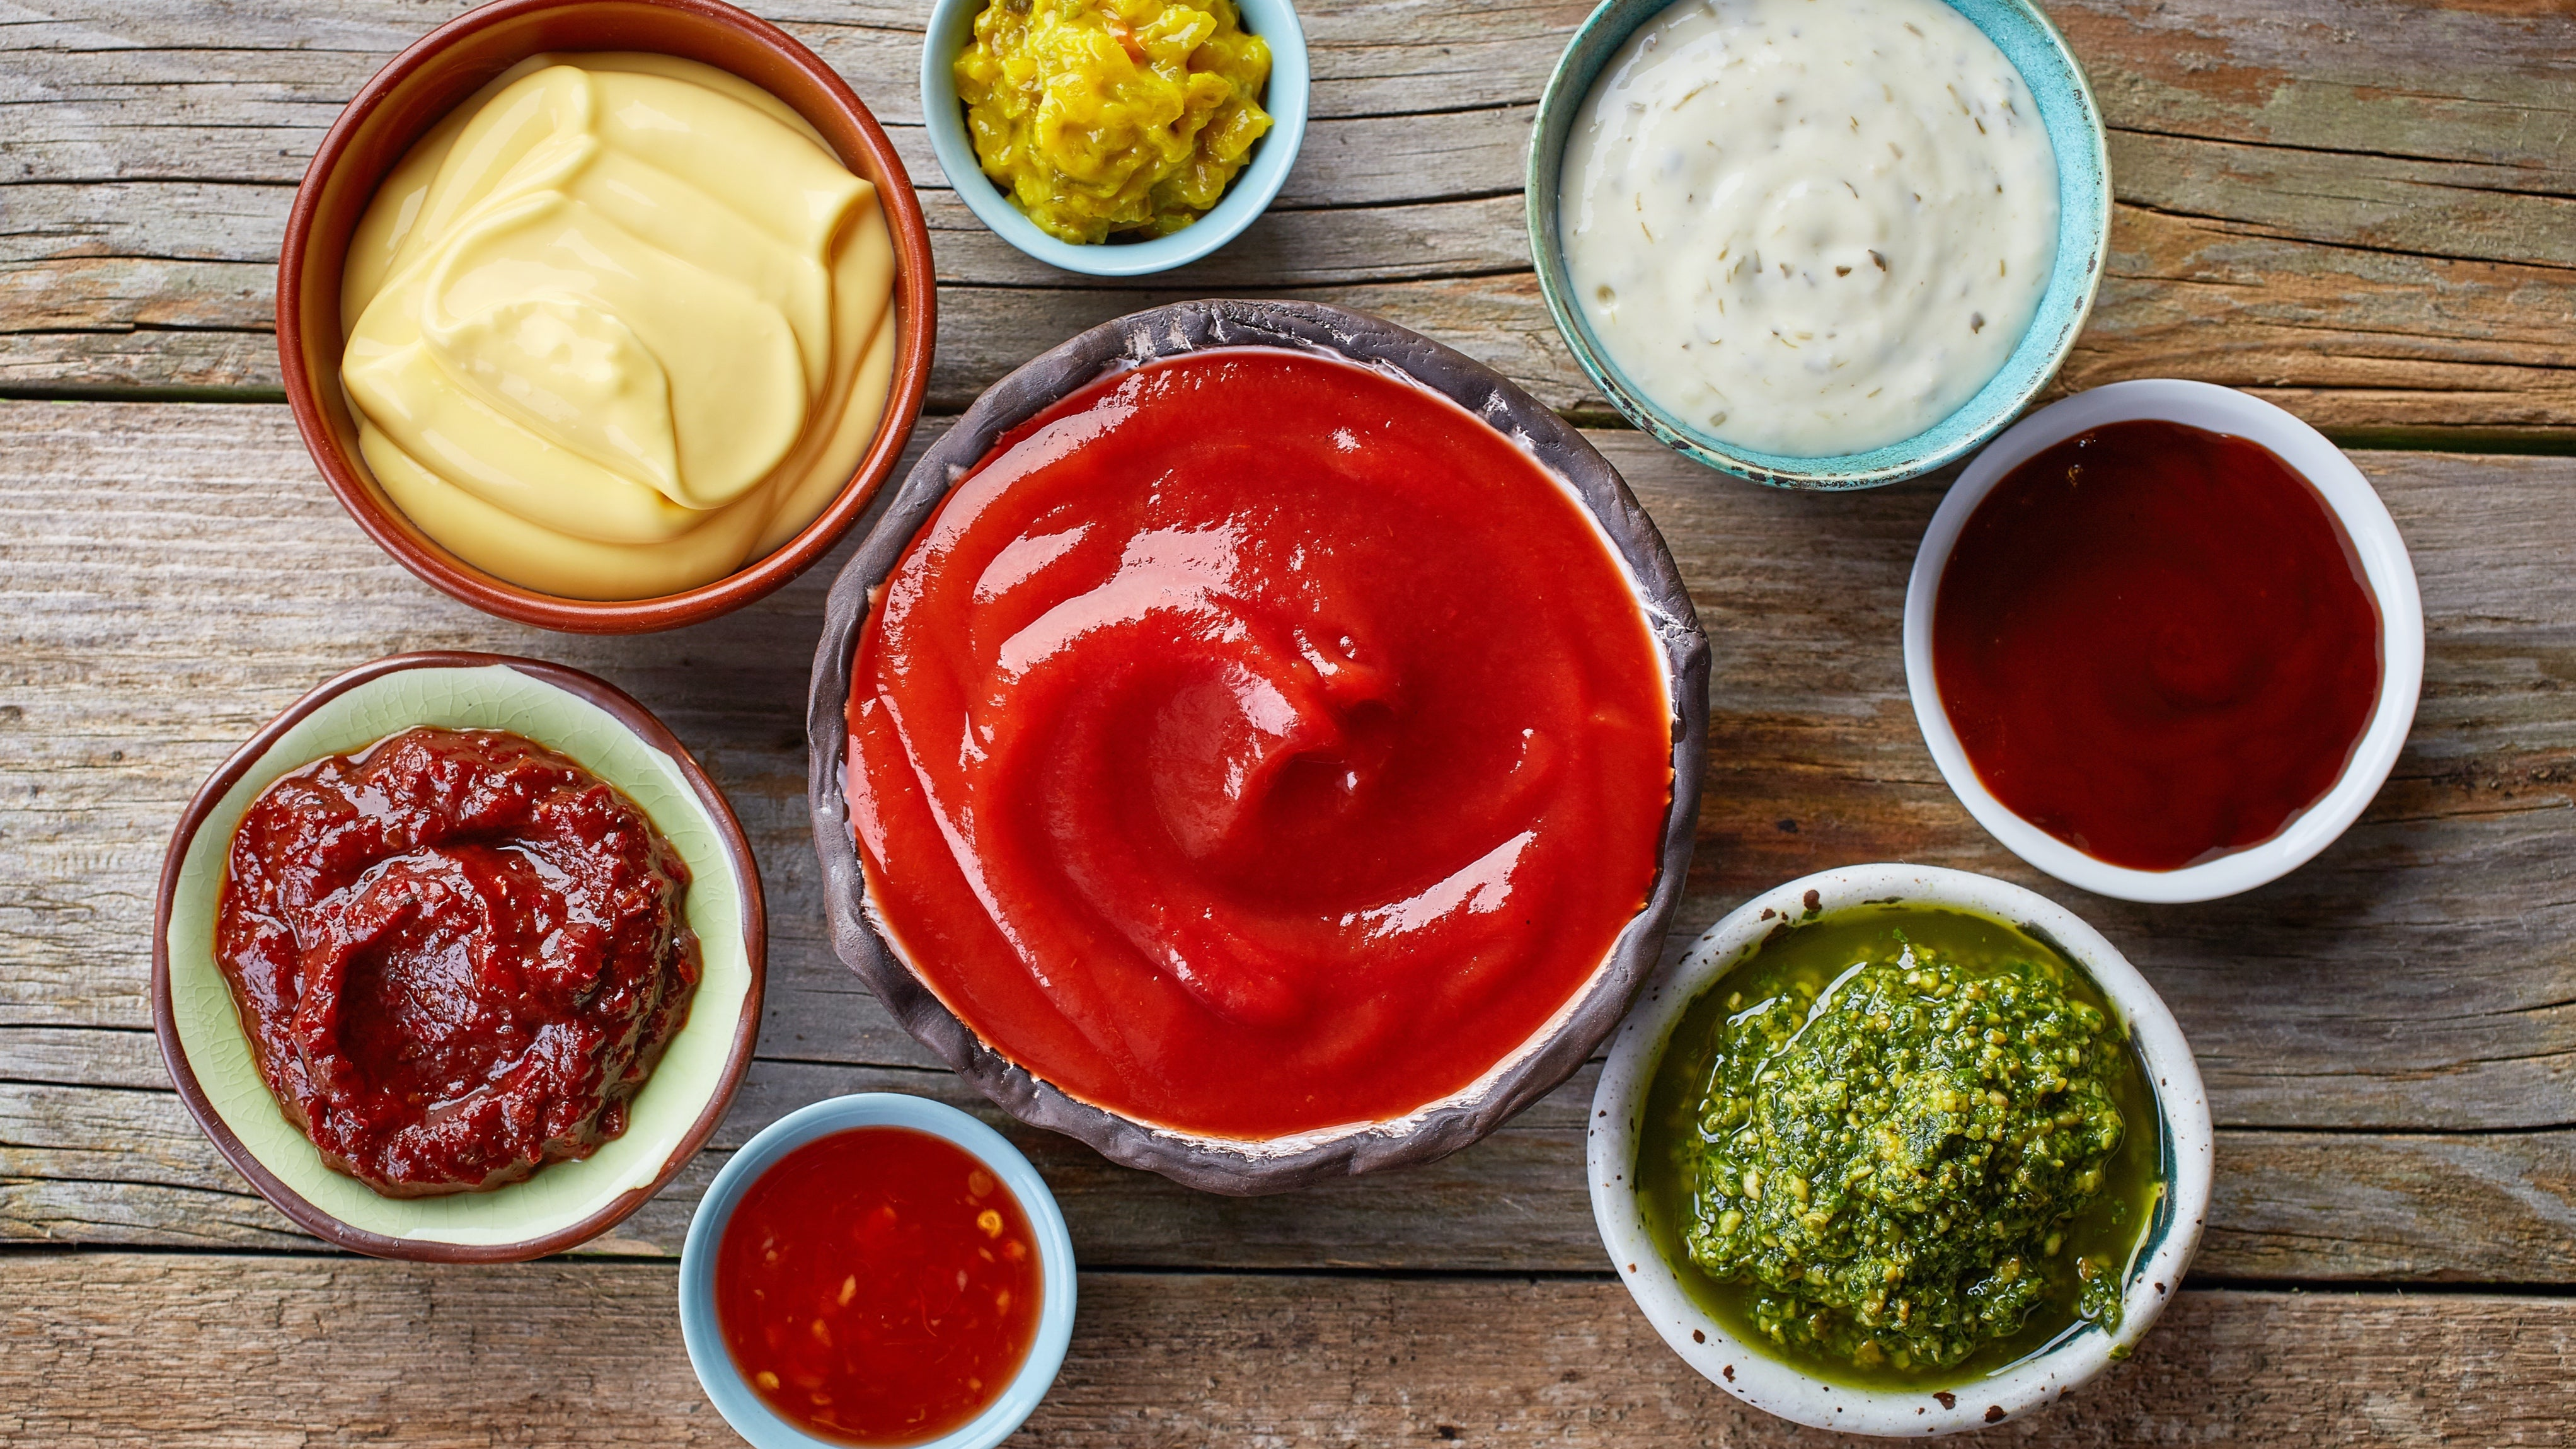 Now Is The Time To Buy Your Favourite Condiments